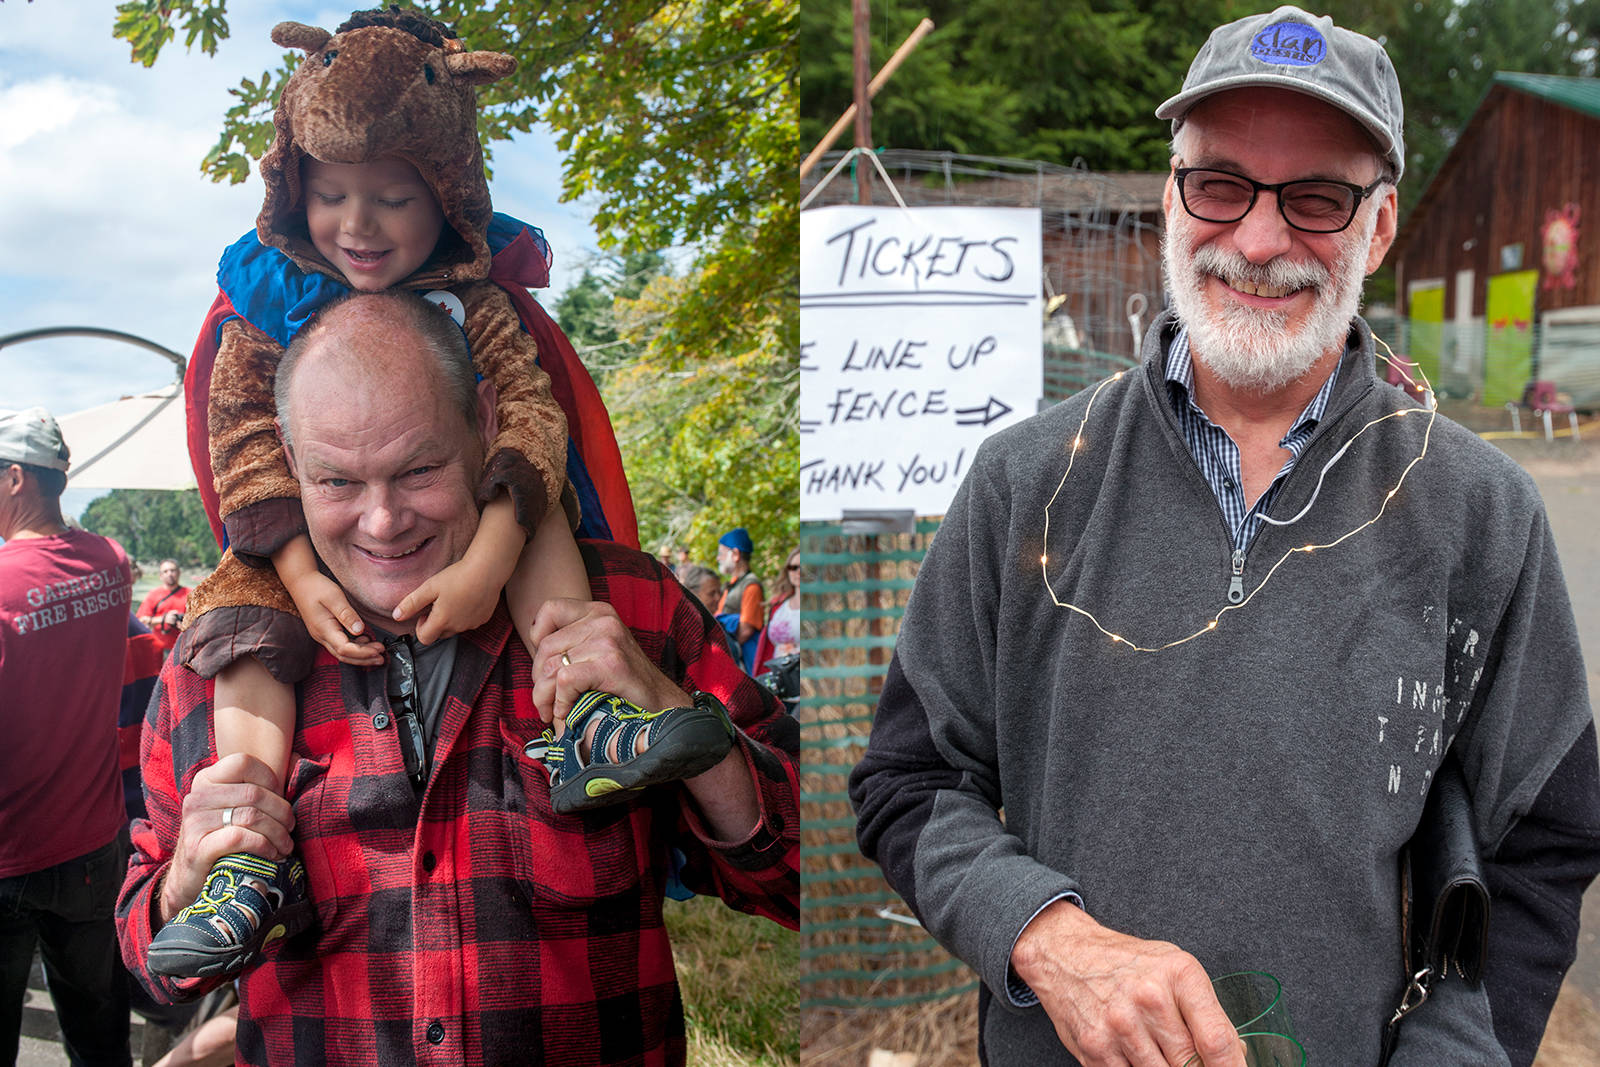 Chris Straw, pictured with his grandson Luca, left, and Marc Doré have been identified as the men who died in a construction accident on Gabriola Island on Tuesday. (Photos courtesy R. Jeanette Martin)